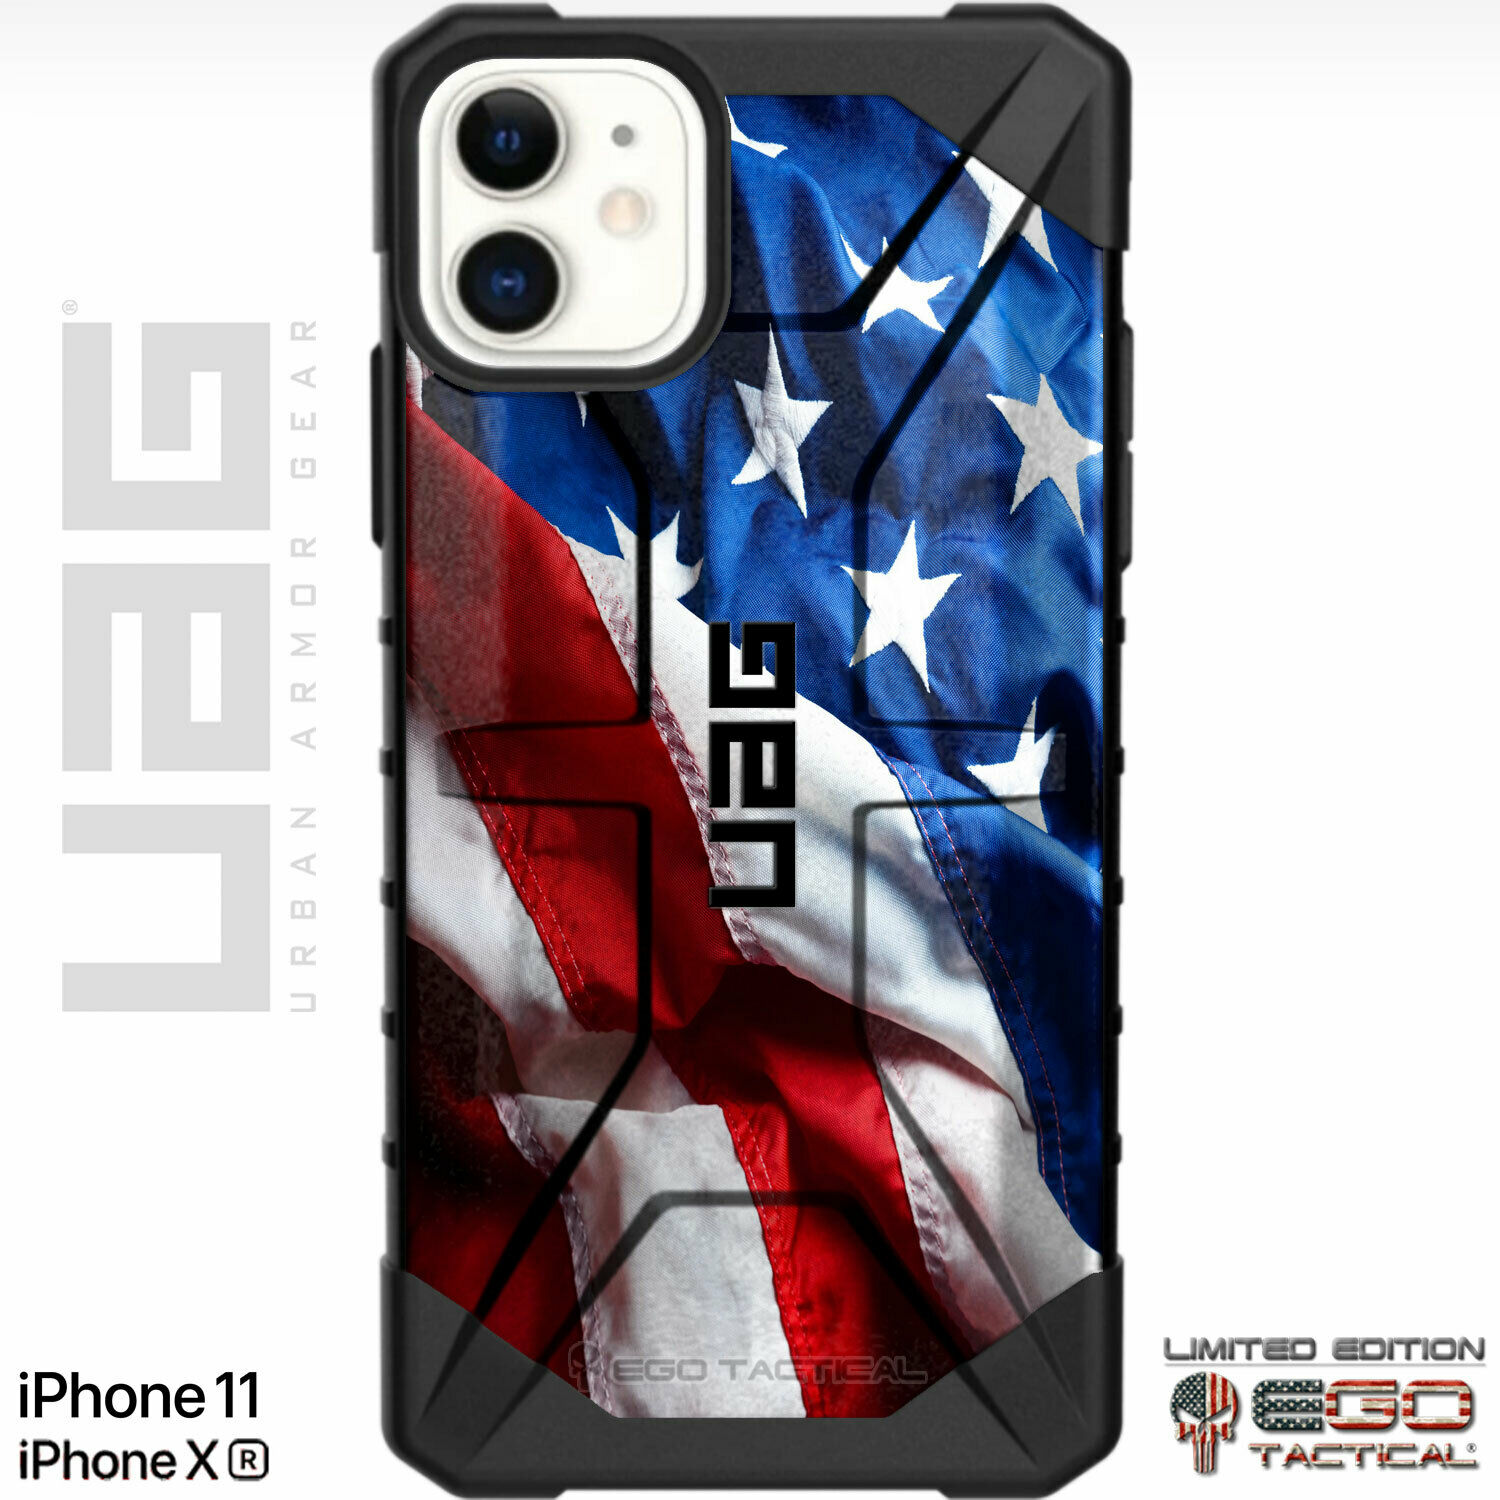 Constitution Bullets Customized Designs by Ego Tactical Over a UAG- Urban Armor Gear Case for Apple iPhone X//Xs Flag - We The People Limited Edition 5.8